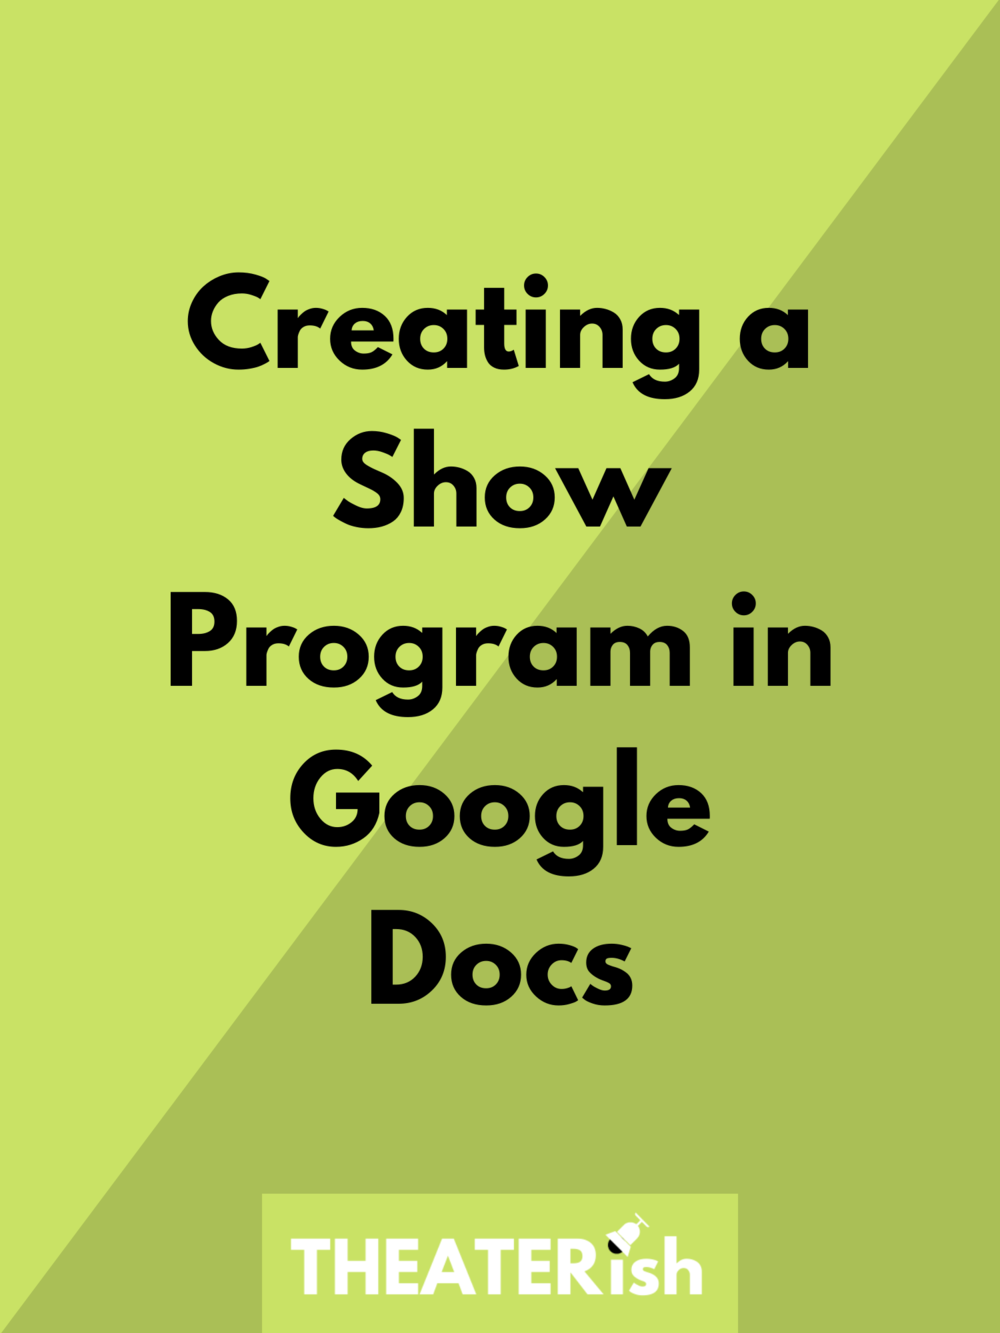 how to create a show program in google docs theaterish. Black Bedroom Furniture Sets. Home Design Ideas